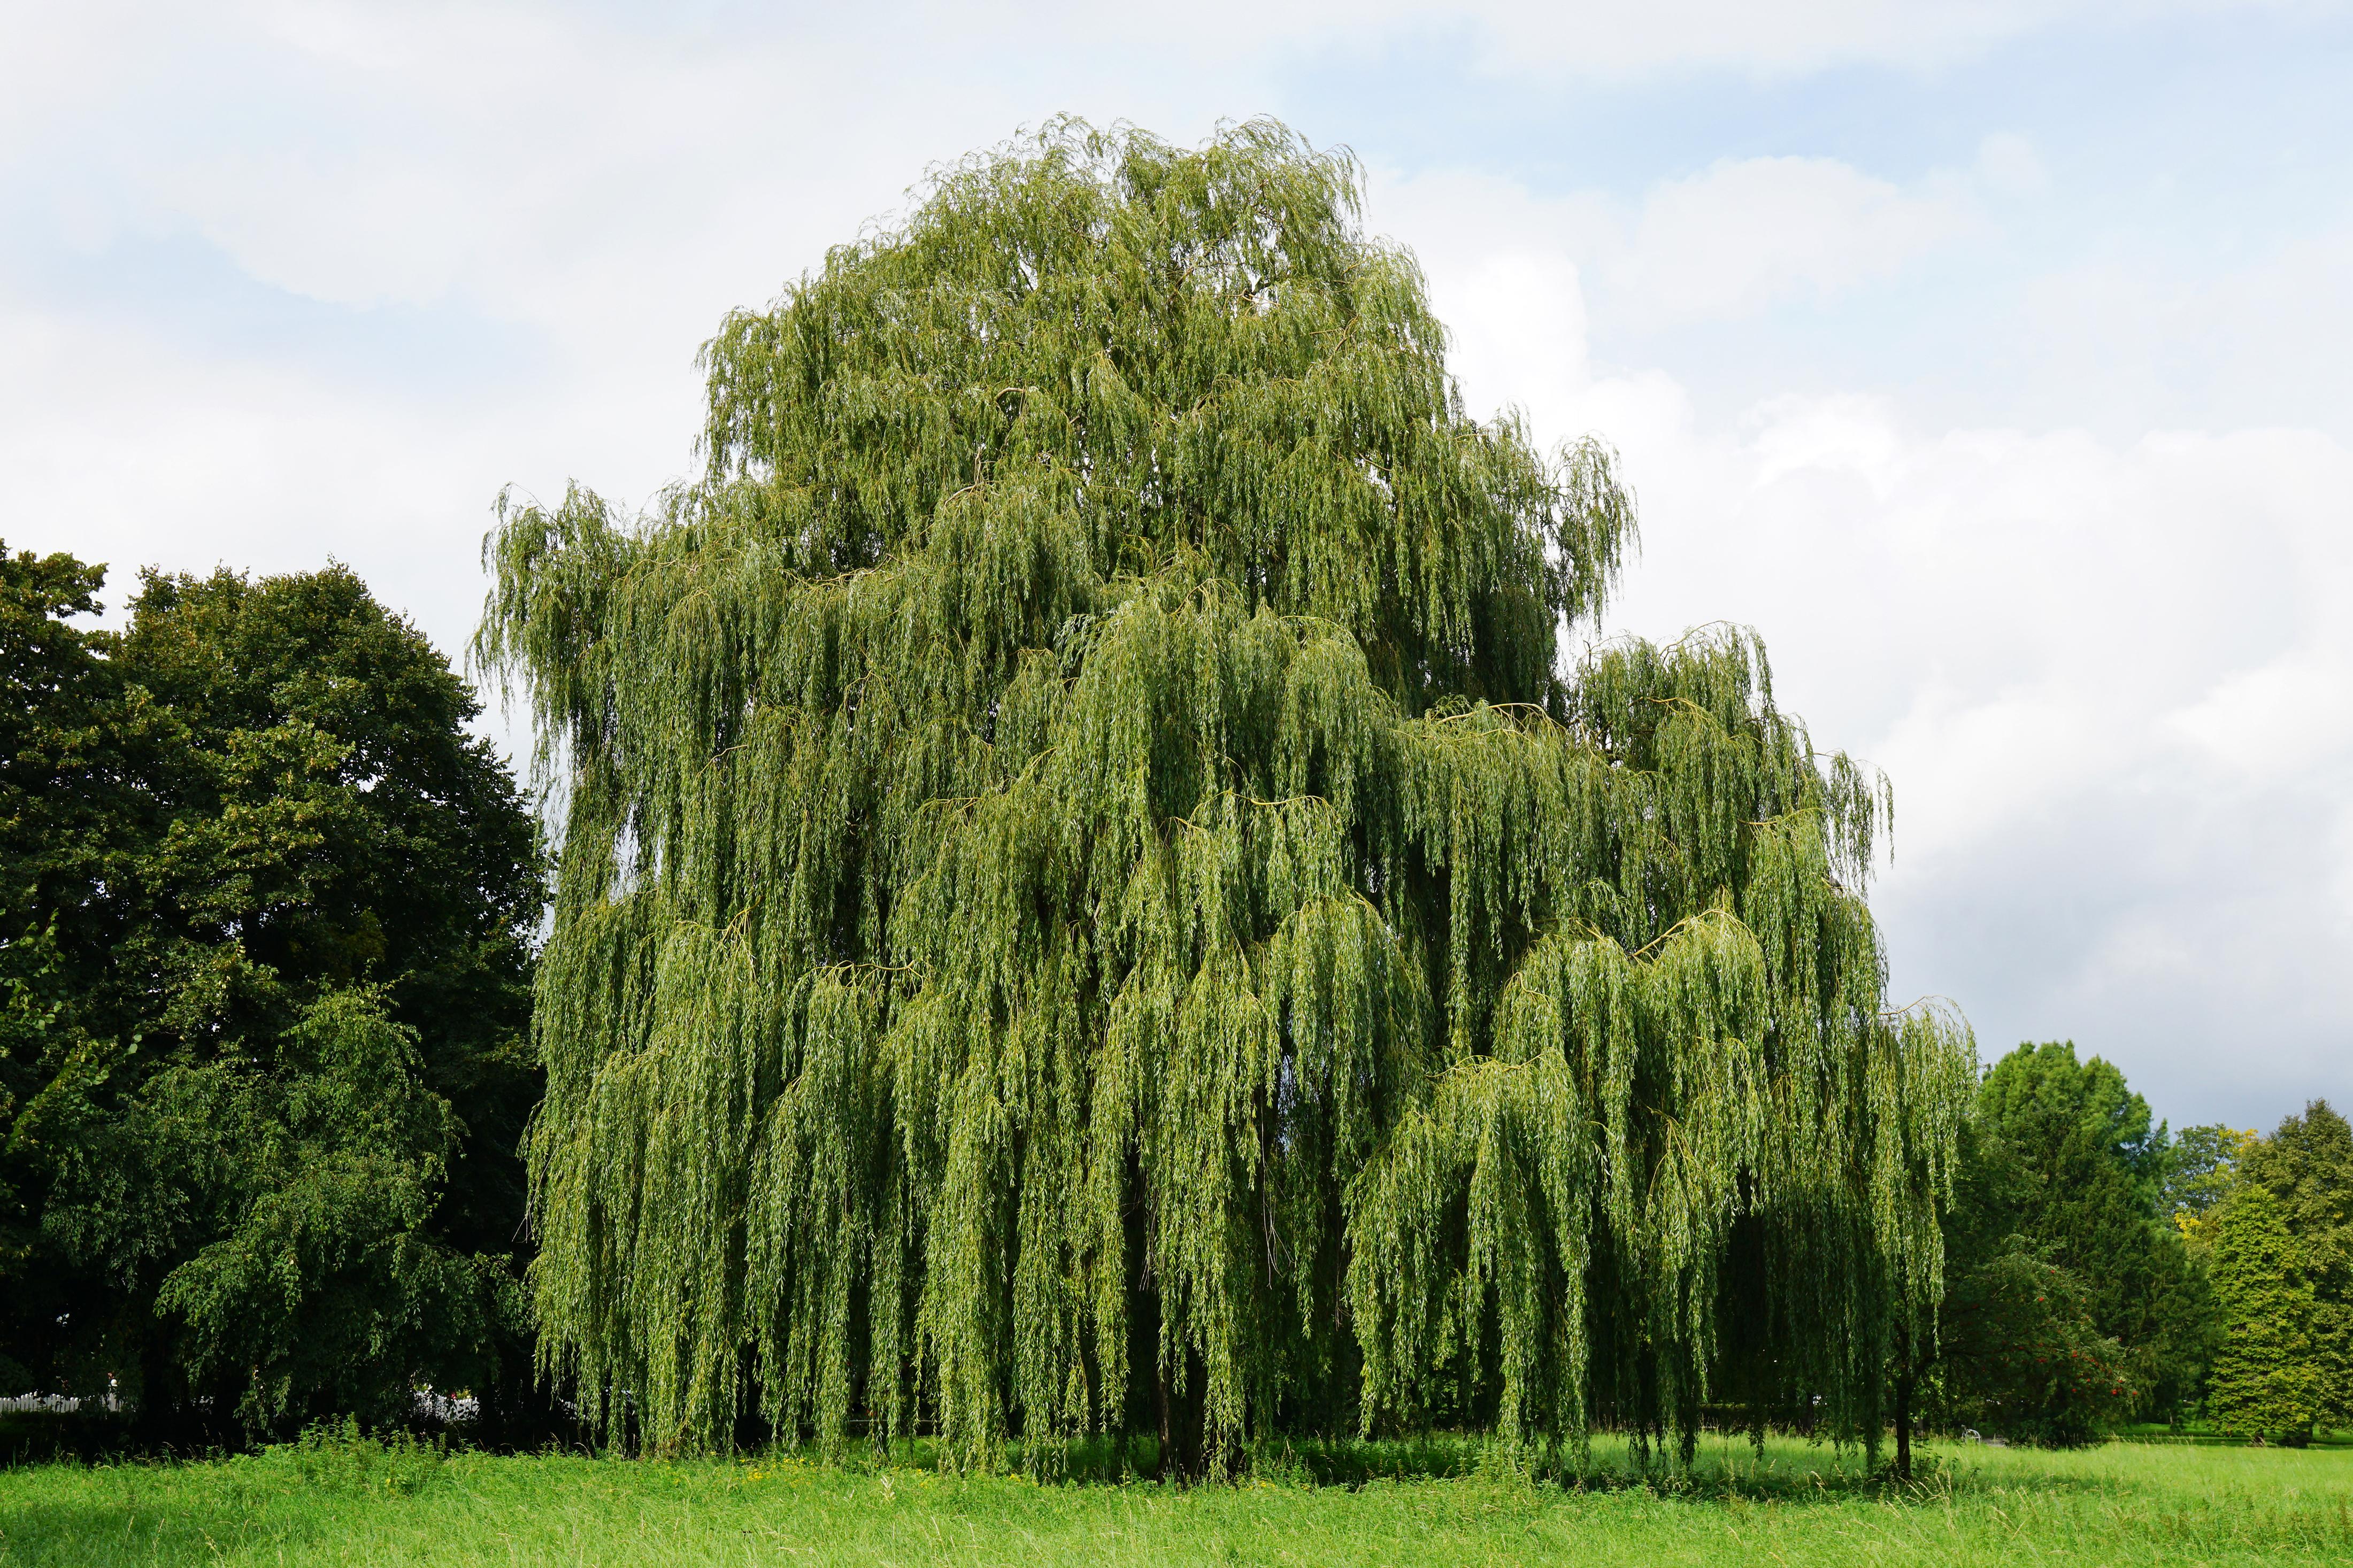 graphicstock-weeping-willow-tree-also-known-as-babylon-willow-or-salix-babylonica_HWlmVkKOvZ.jpg